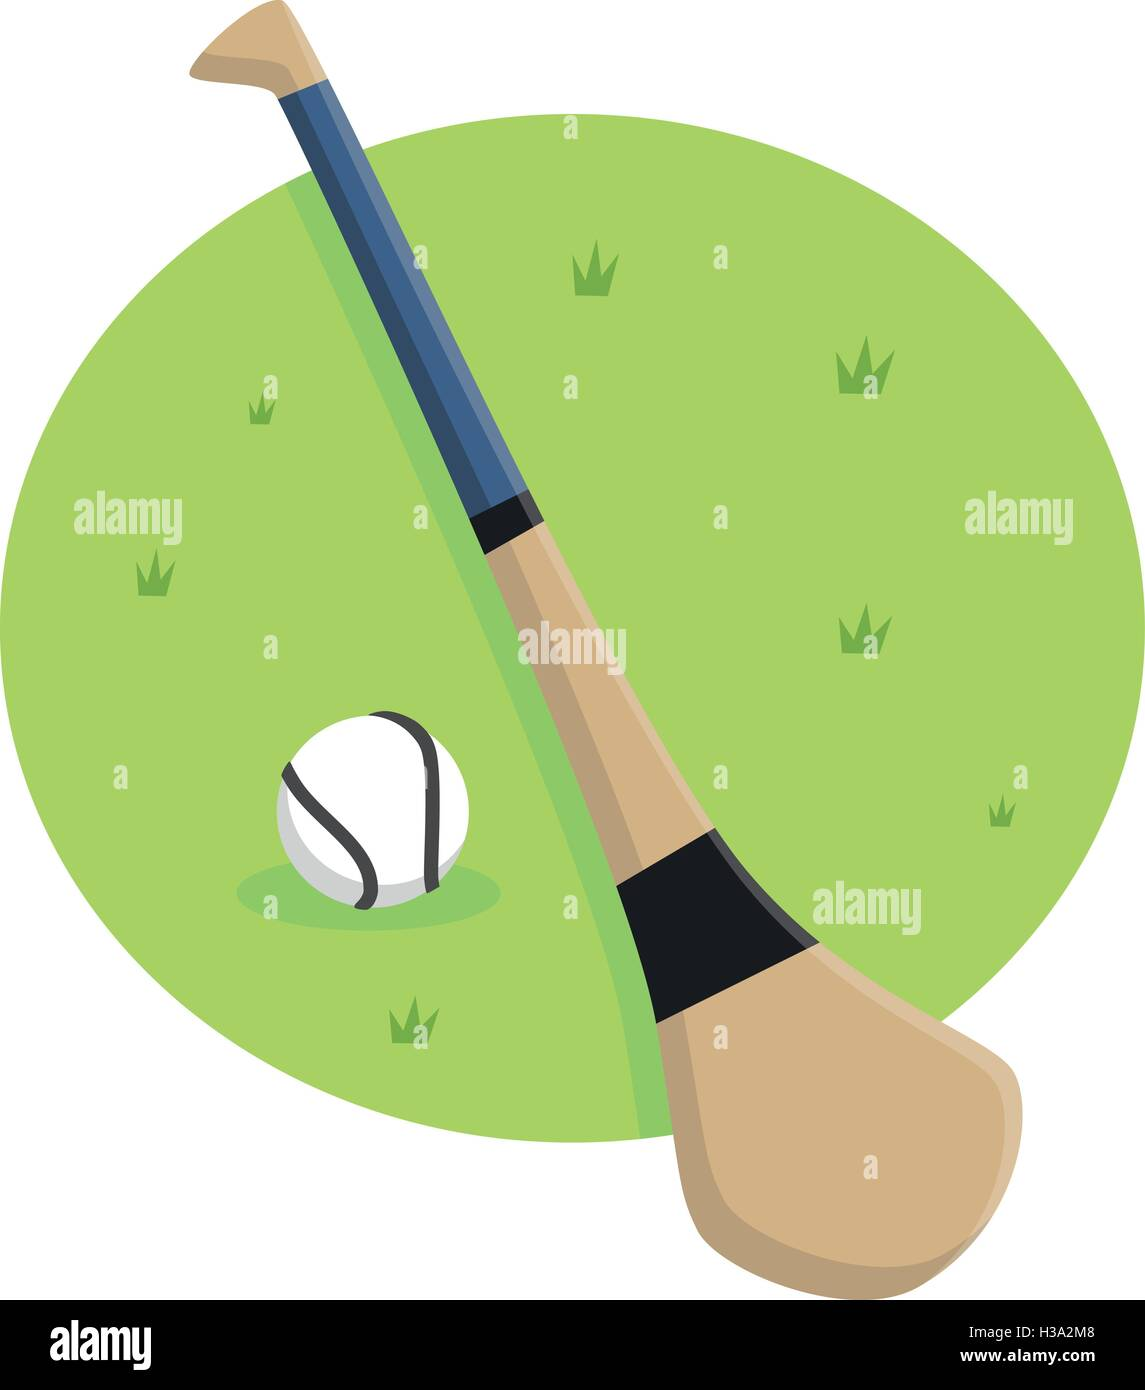 Hurley Stick and Ball Stock Vector Art & Illustration ...